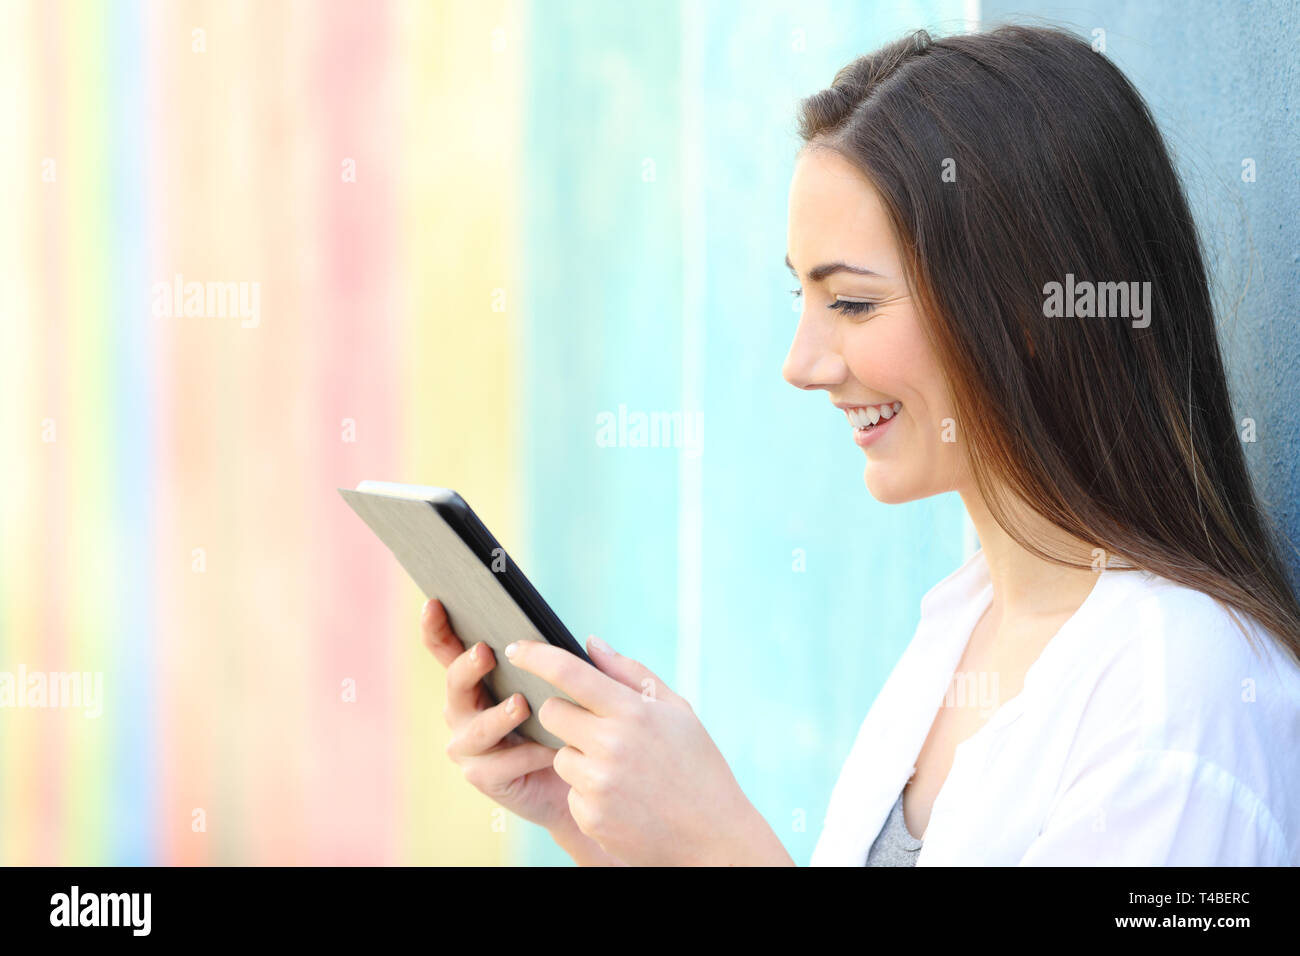 Side view pportrait of a happy girl on a colorful wall watching media on tablet - Stock Image